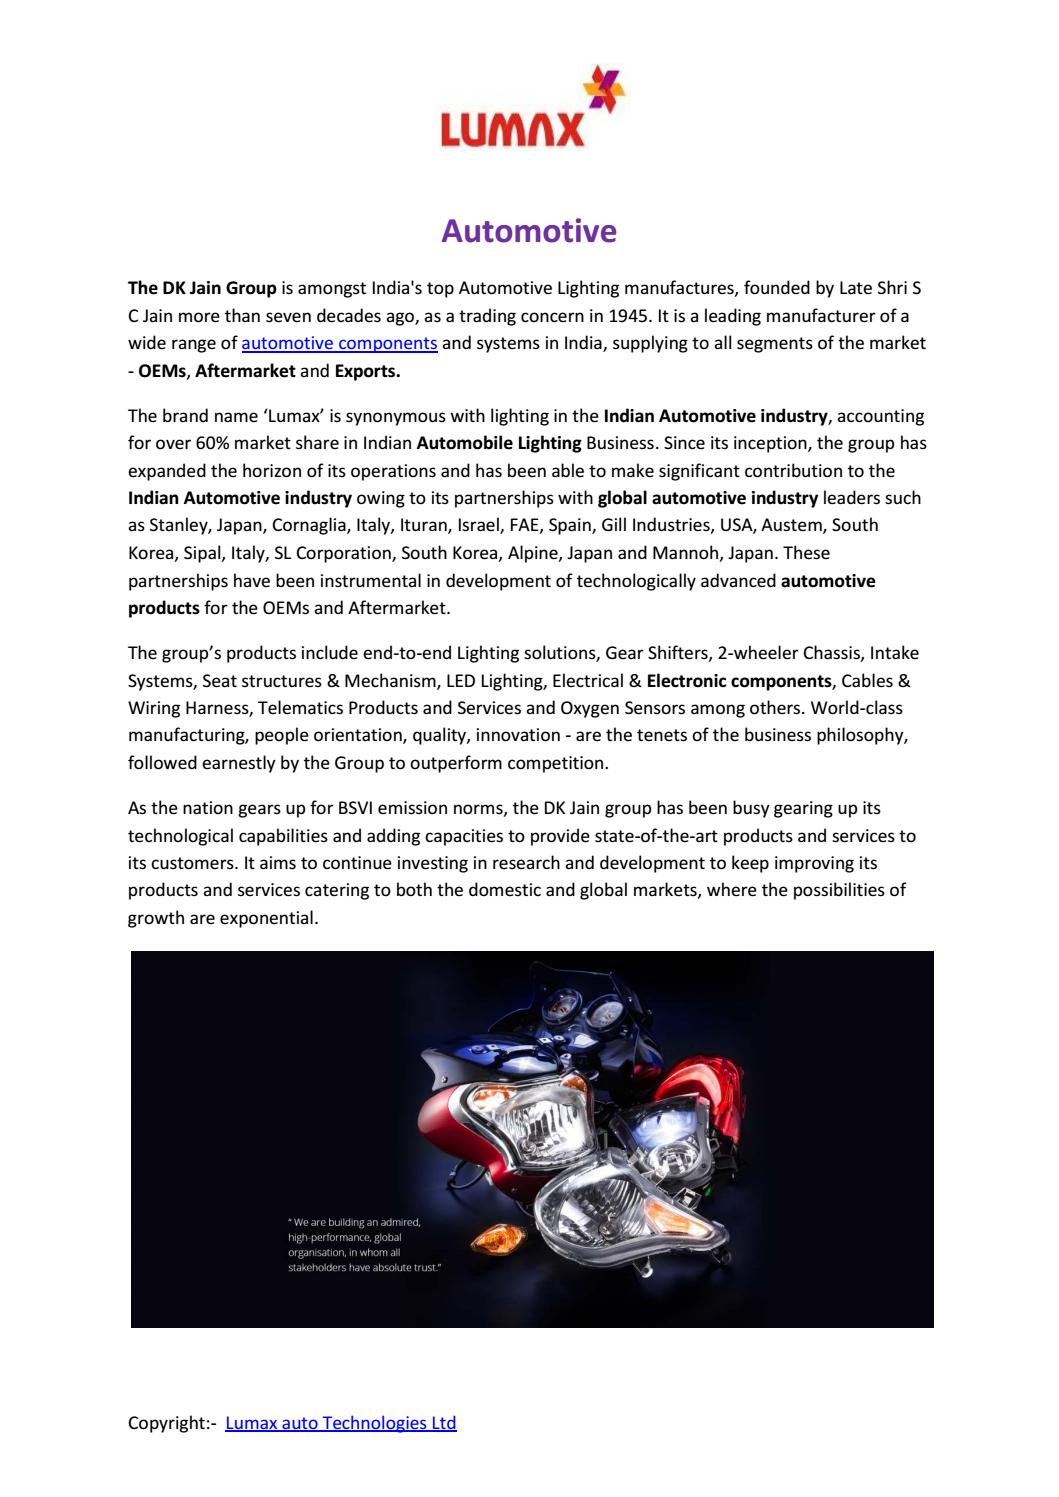 Automotive Component Manufacturers Lumax Autotech By Lumaxautotech Auto Wiring Harness India Issuu